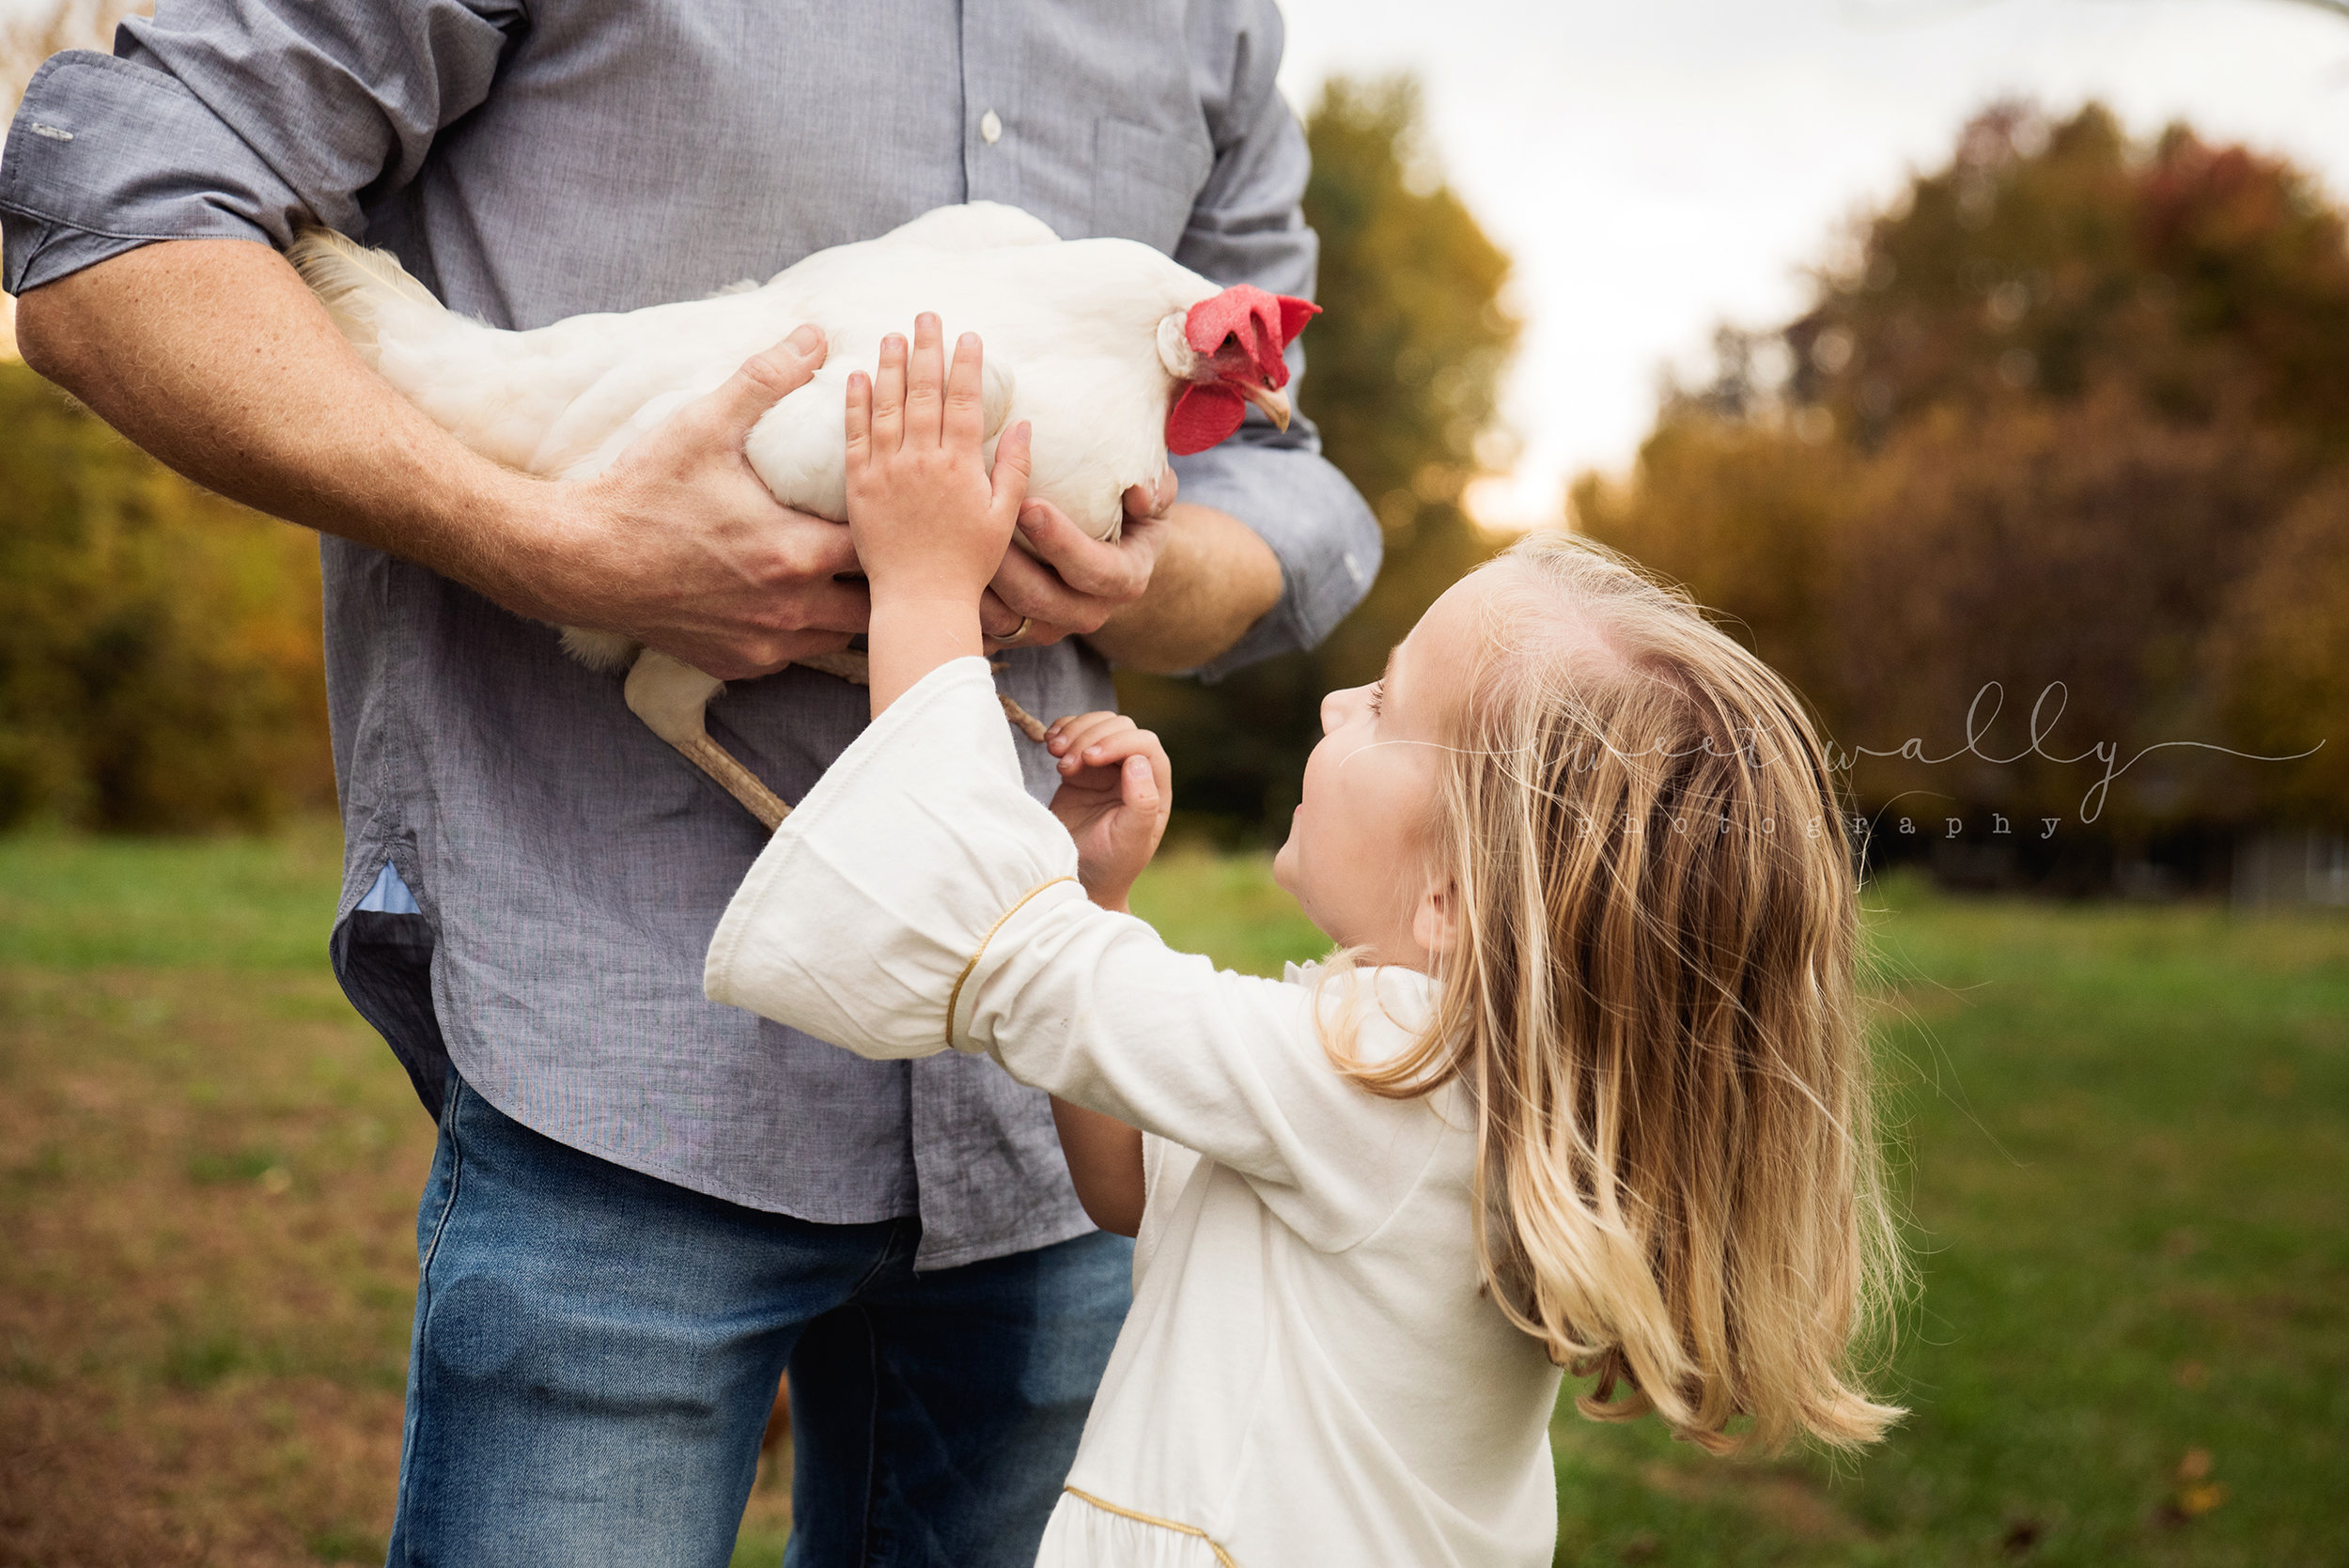 family photographer in bowling green ky.jpg